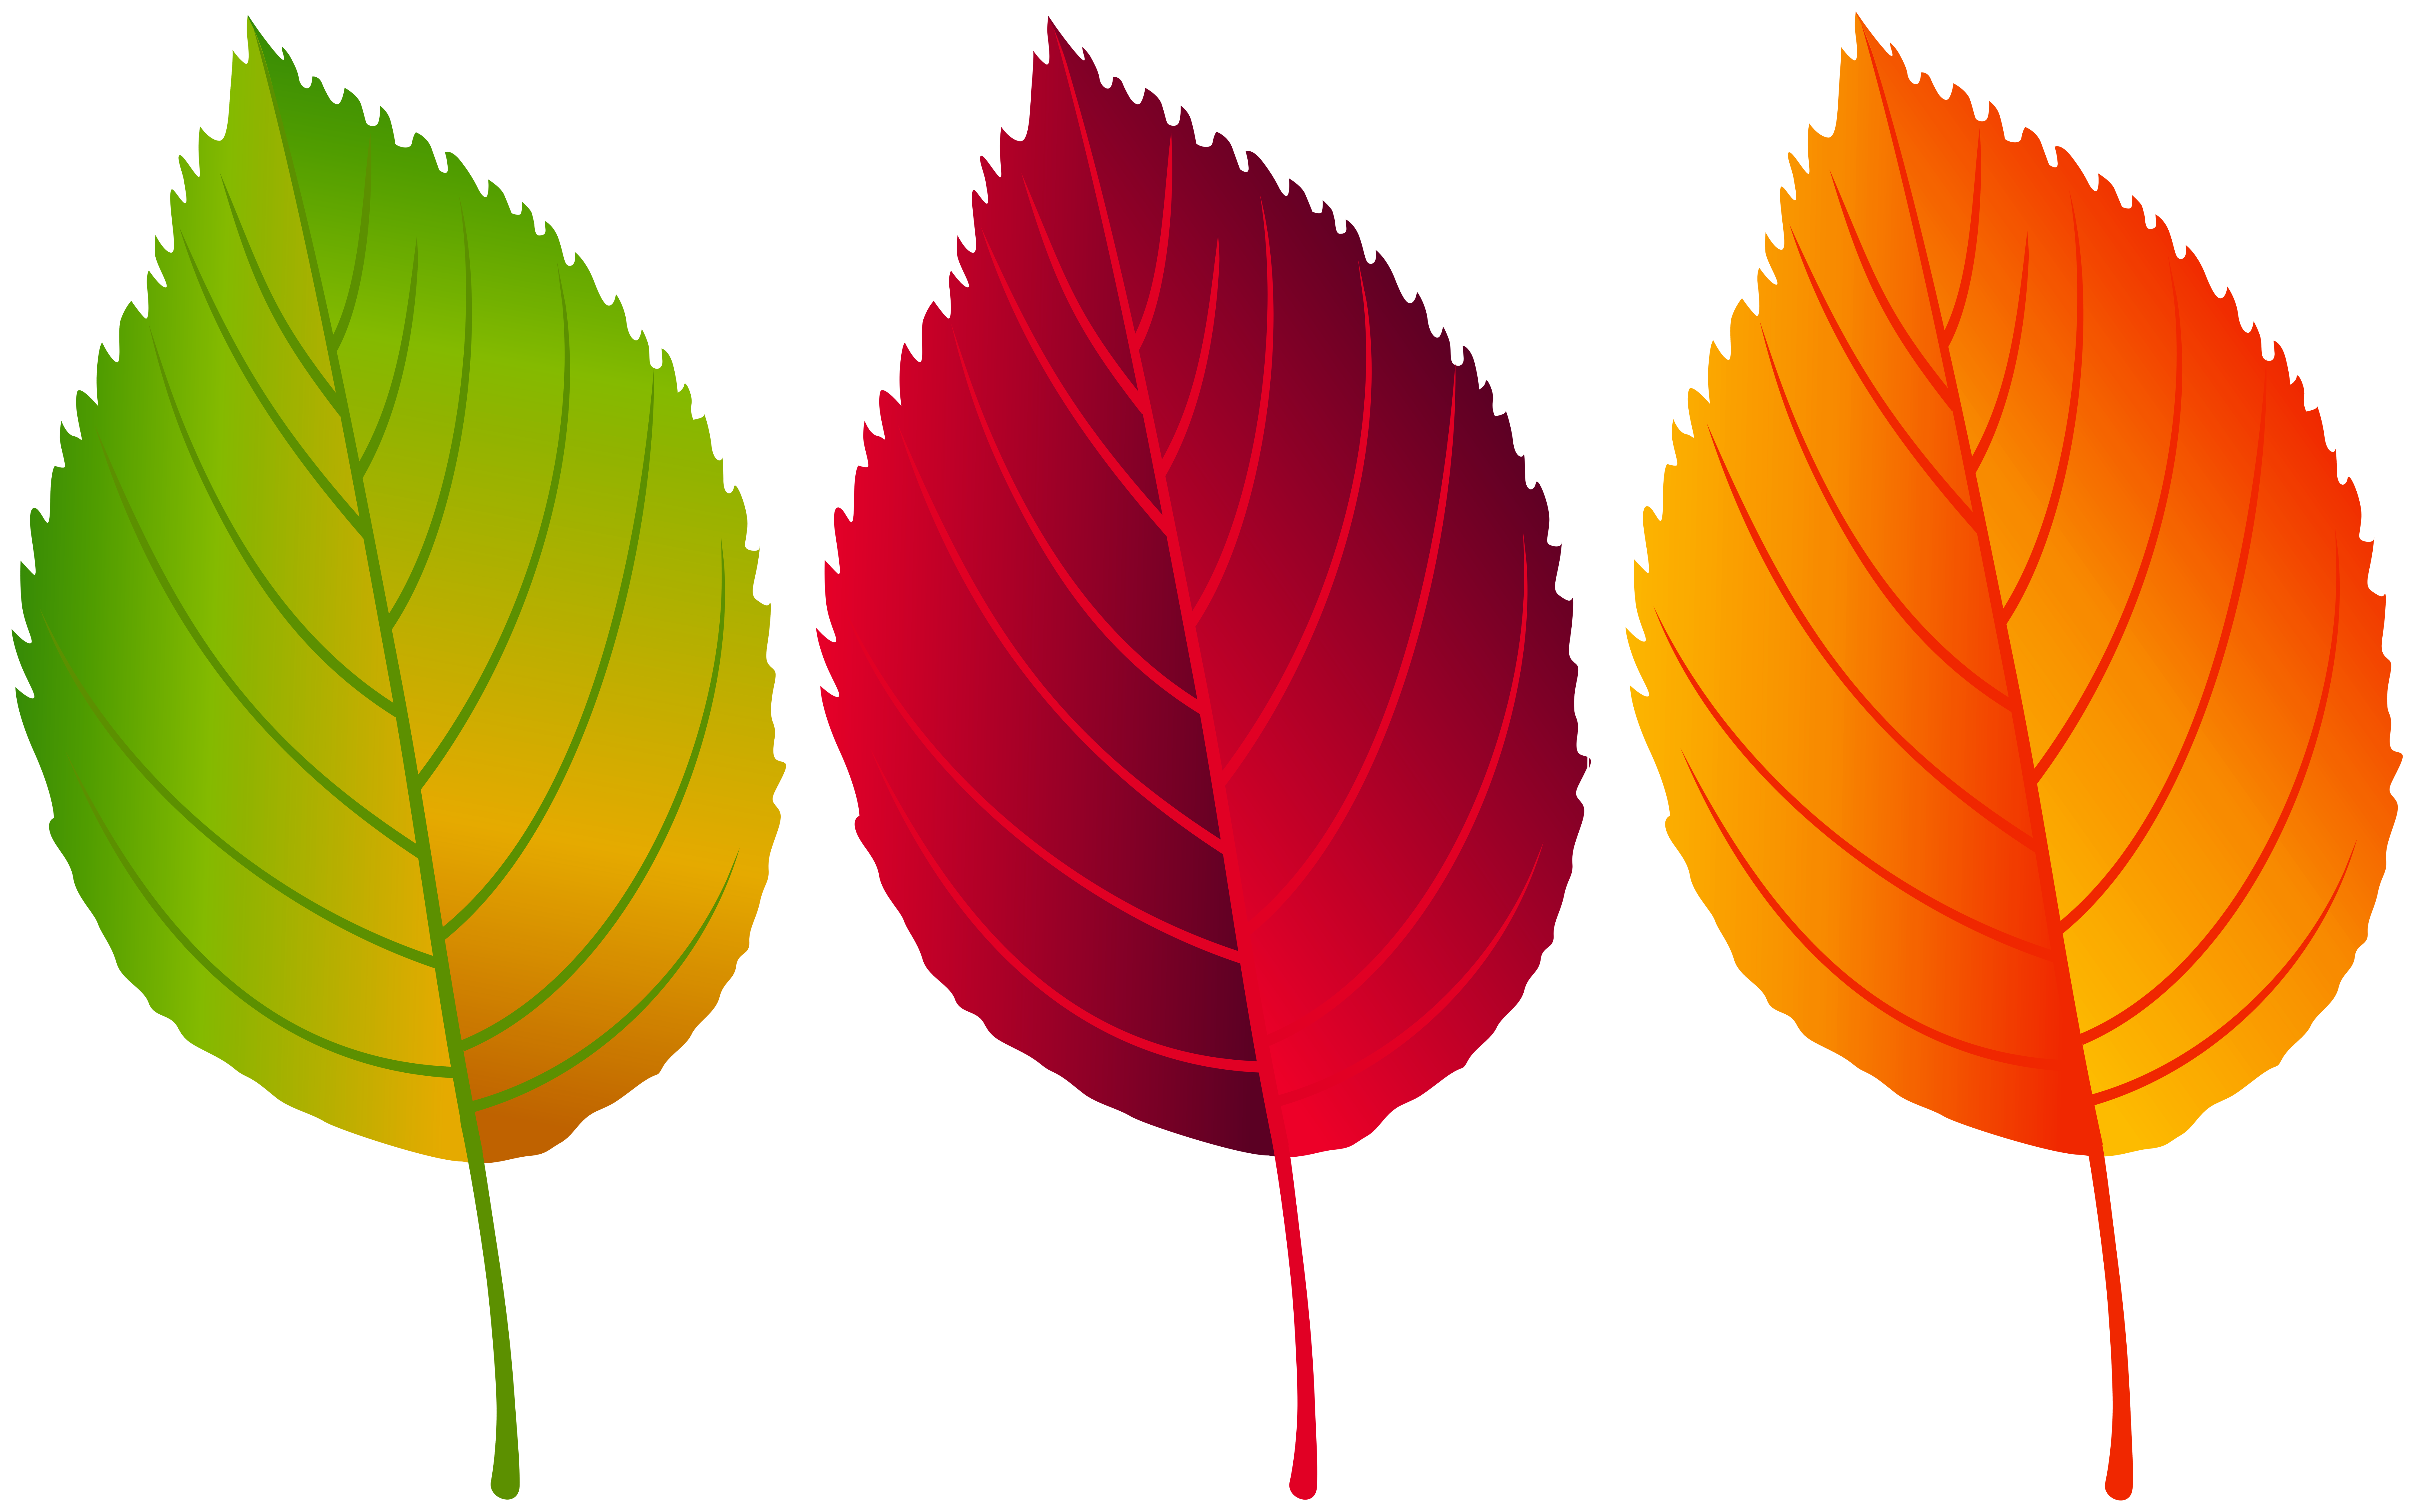 Colorful fall leaves clipart png free stock Colorful Fall Leaves PNG Clip Art Image | Gallery Yopriceville ... png free stock